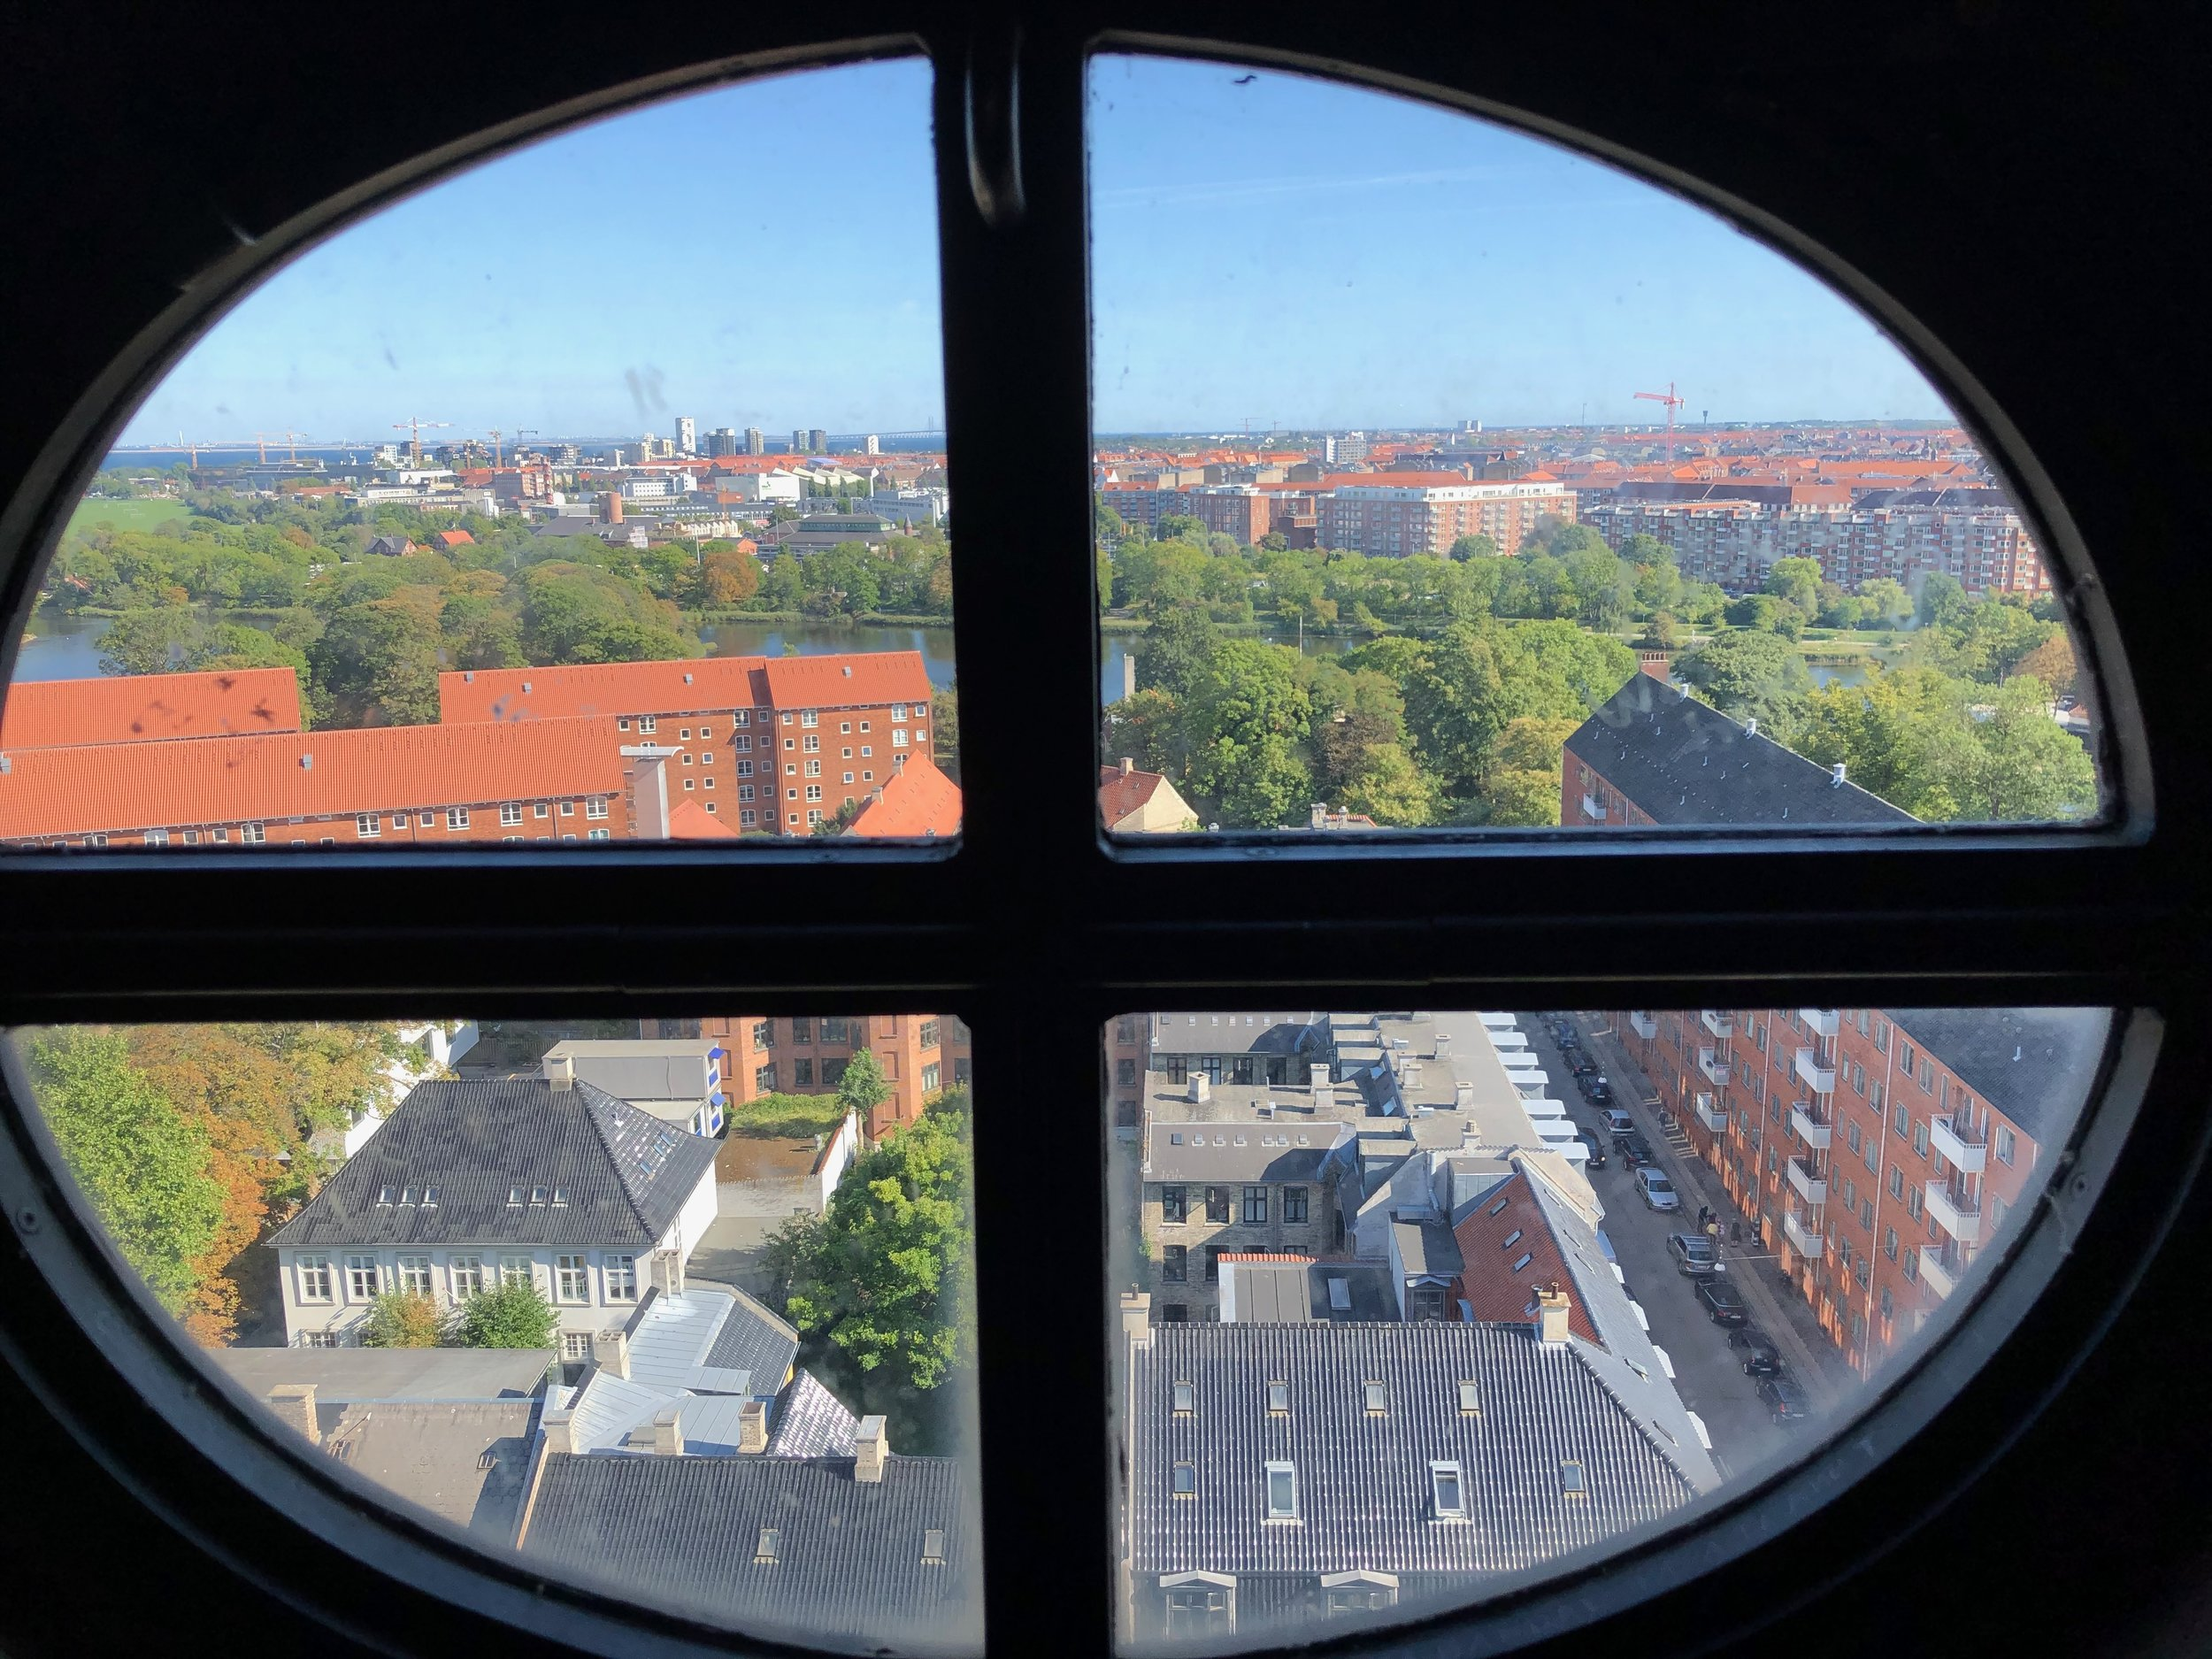 A sneak peak from the bell tower